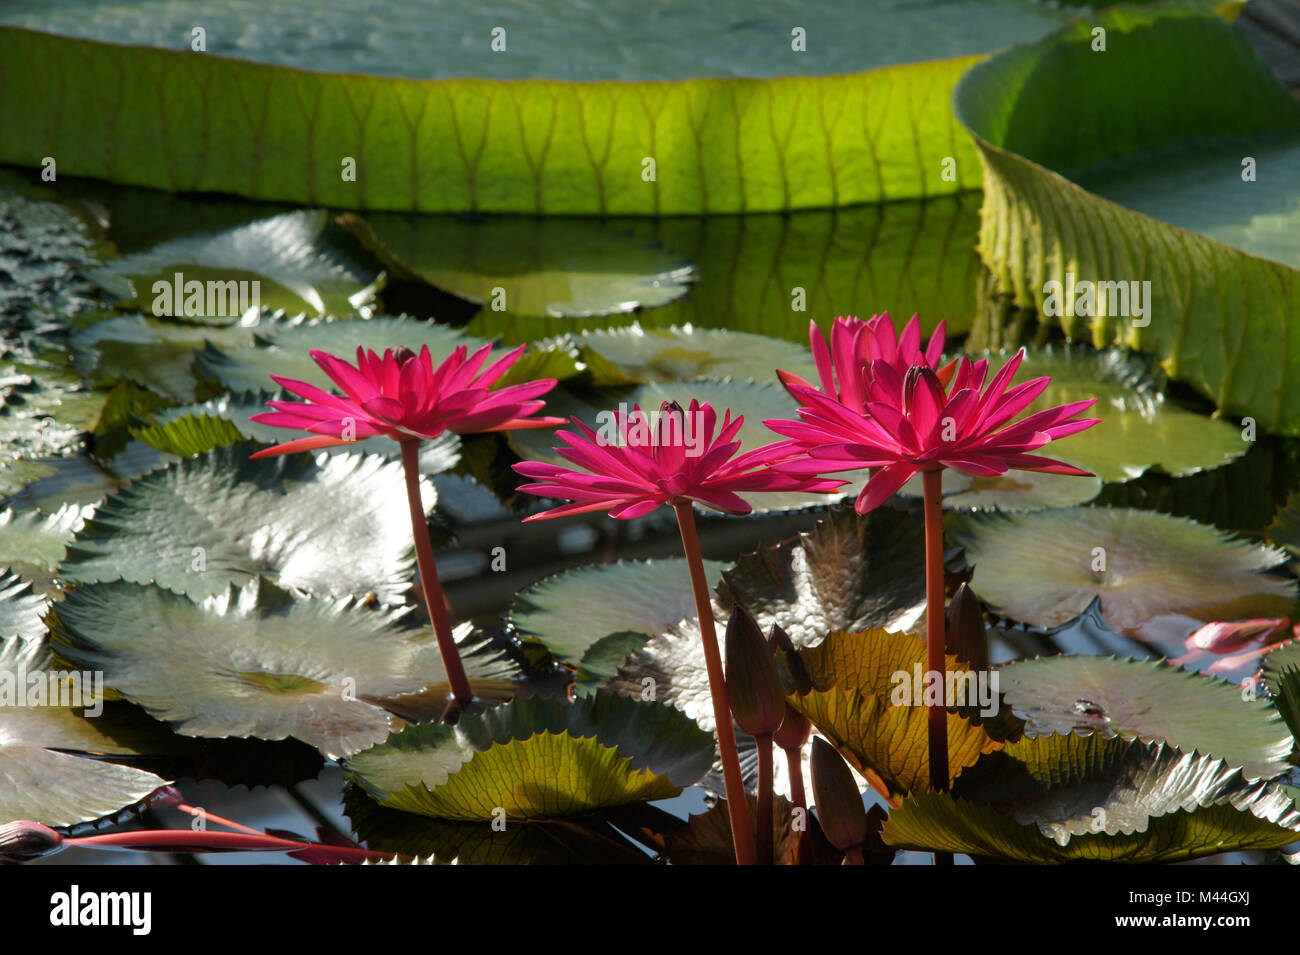 Nymphaea rubra Red Flare, Rote Seerose, red waterlily - Stock Image